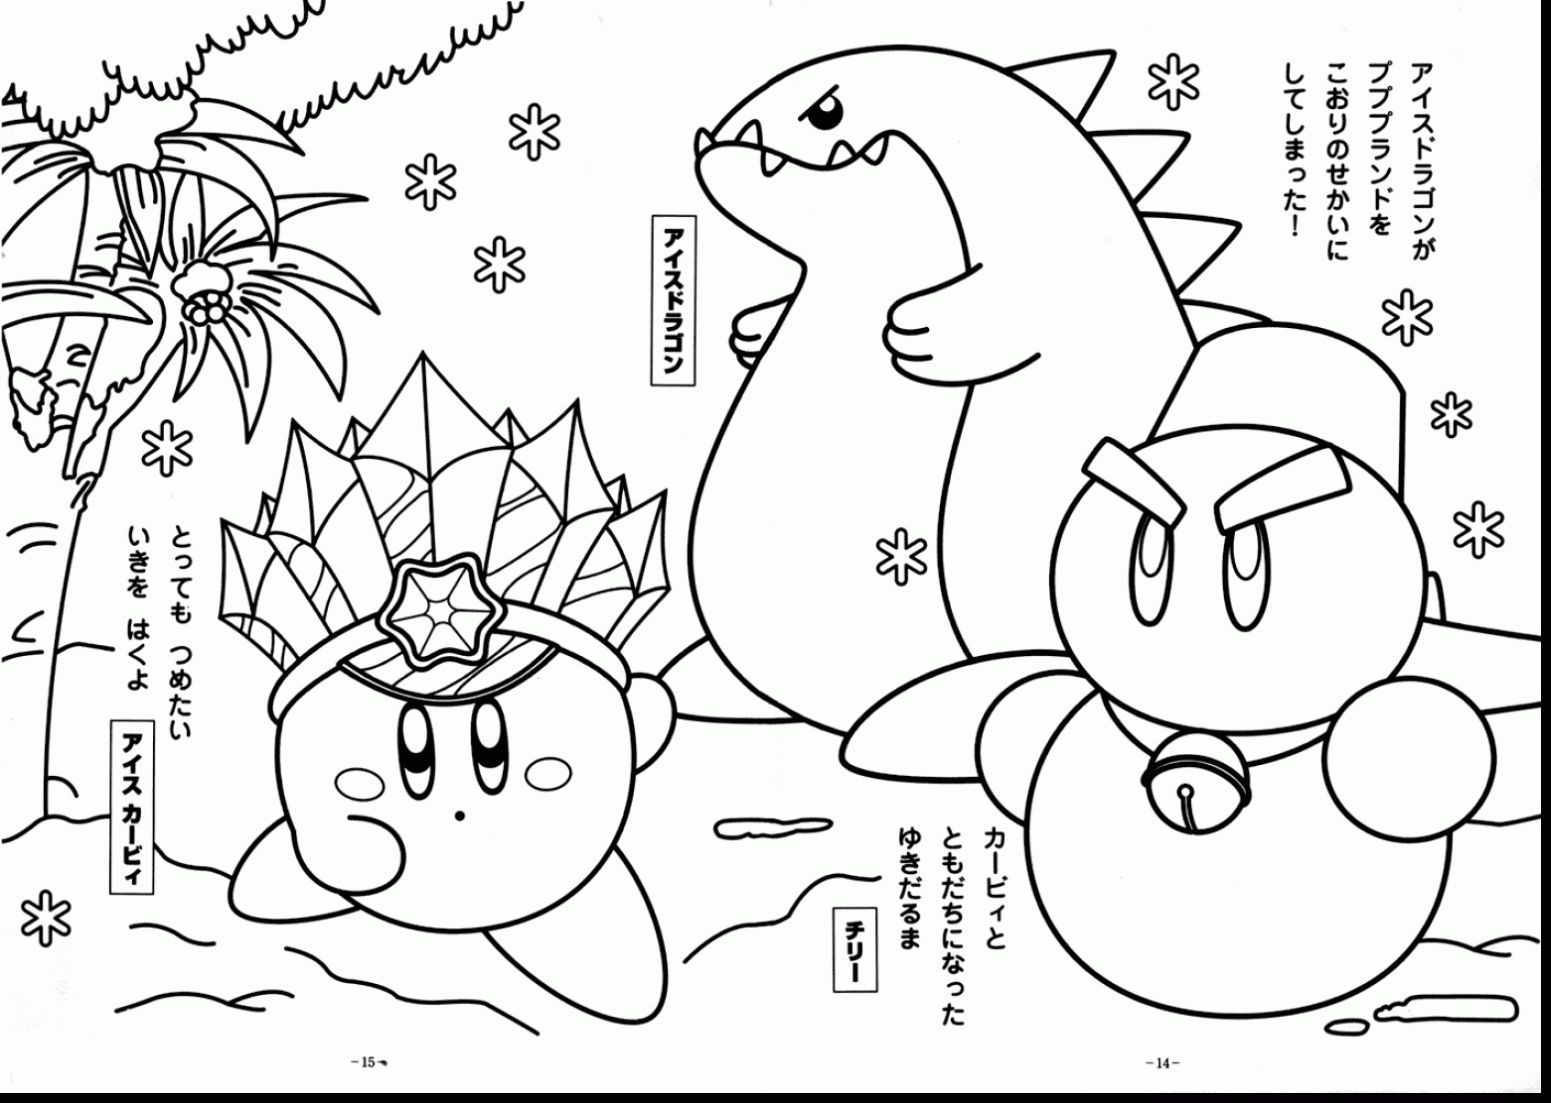 Kirby Coloring Pages Kir Coloring Pictures Kir Coloring Pages Newyork Rp Com For Albanysinsanity Com Coloring Pages Mario Coloring Pages Coloring Pictures